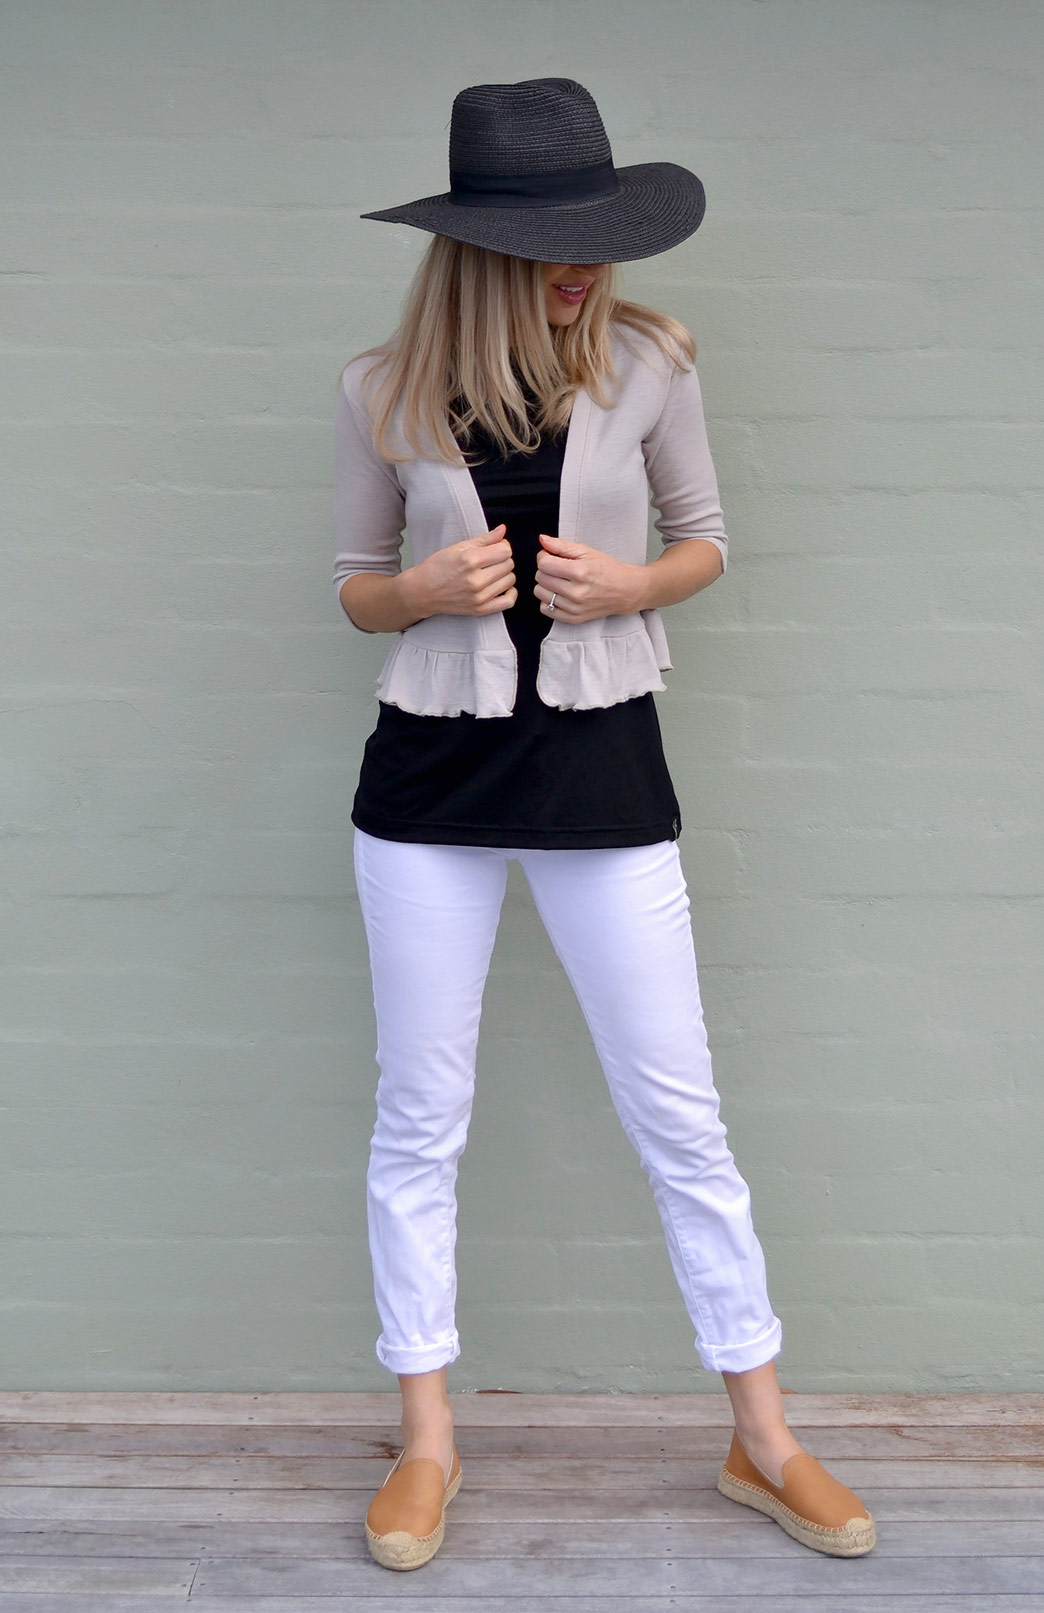 Crop Cardigan - 3/4 Sleeve with Ruffled Hem - Women's Neutral Stone Ruffled Hem 3/4 Sleeve Crop Cardigan - Smitten Merino Tasmania Australia